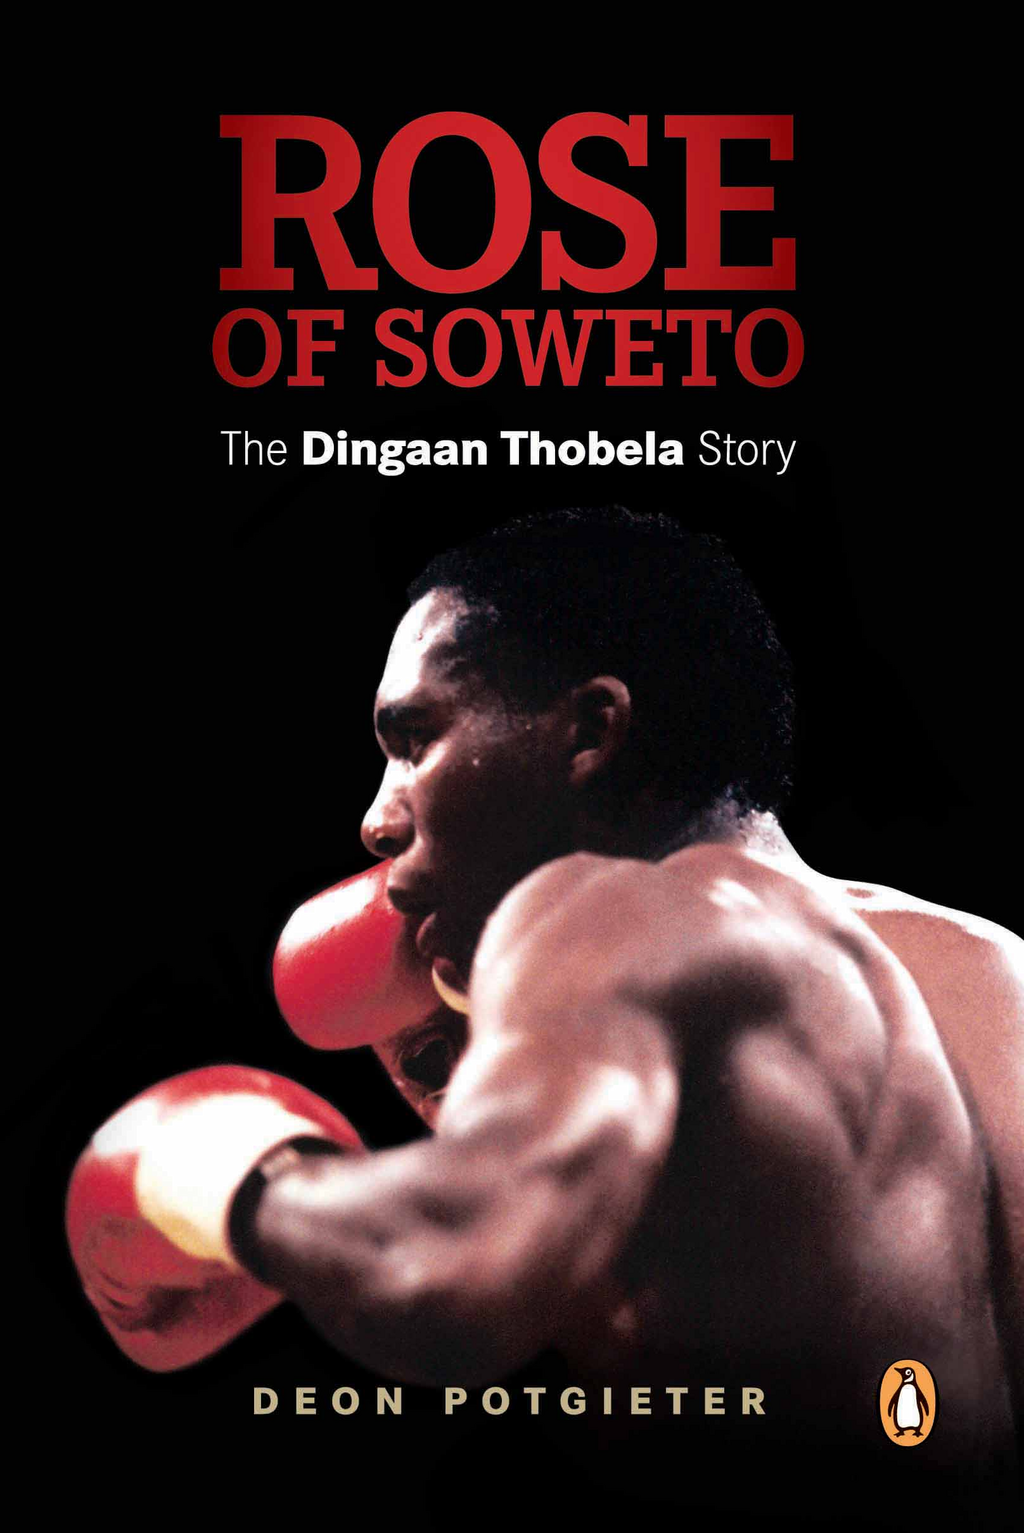 Rose of Soweto - The Dingaan Thobela Story